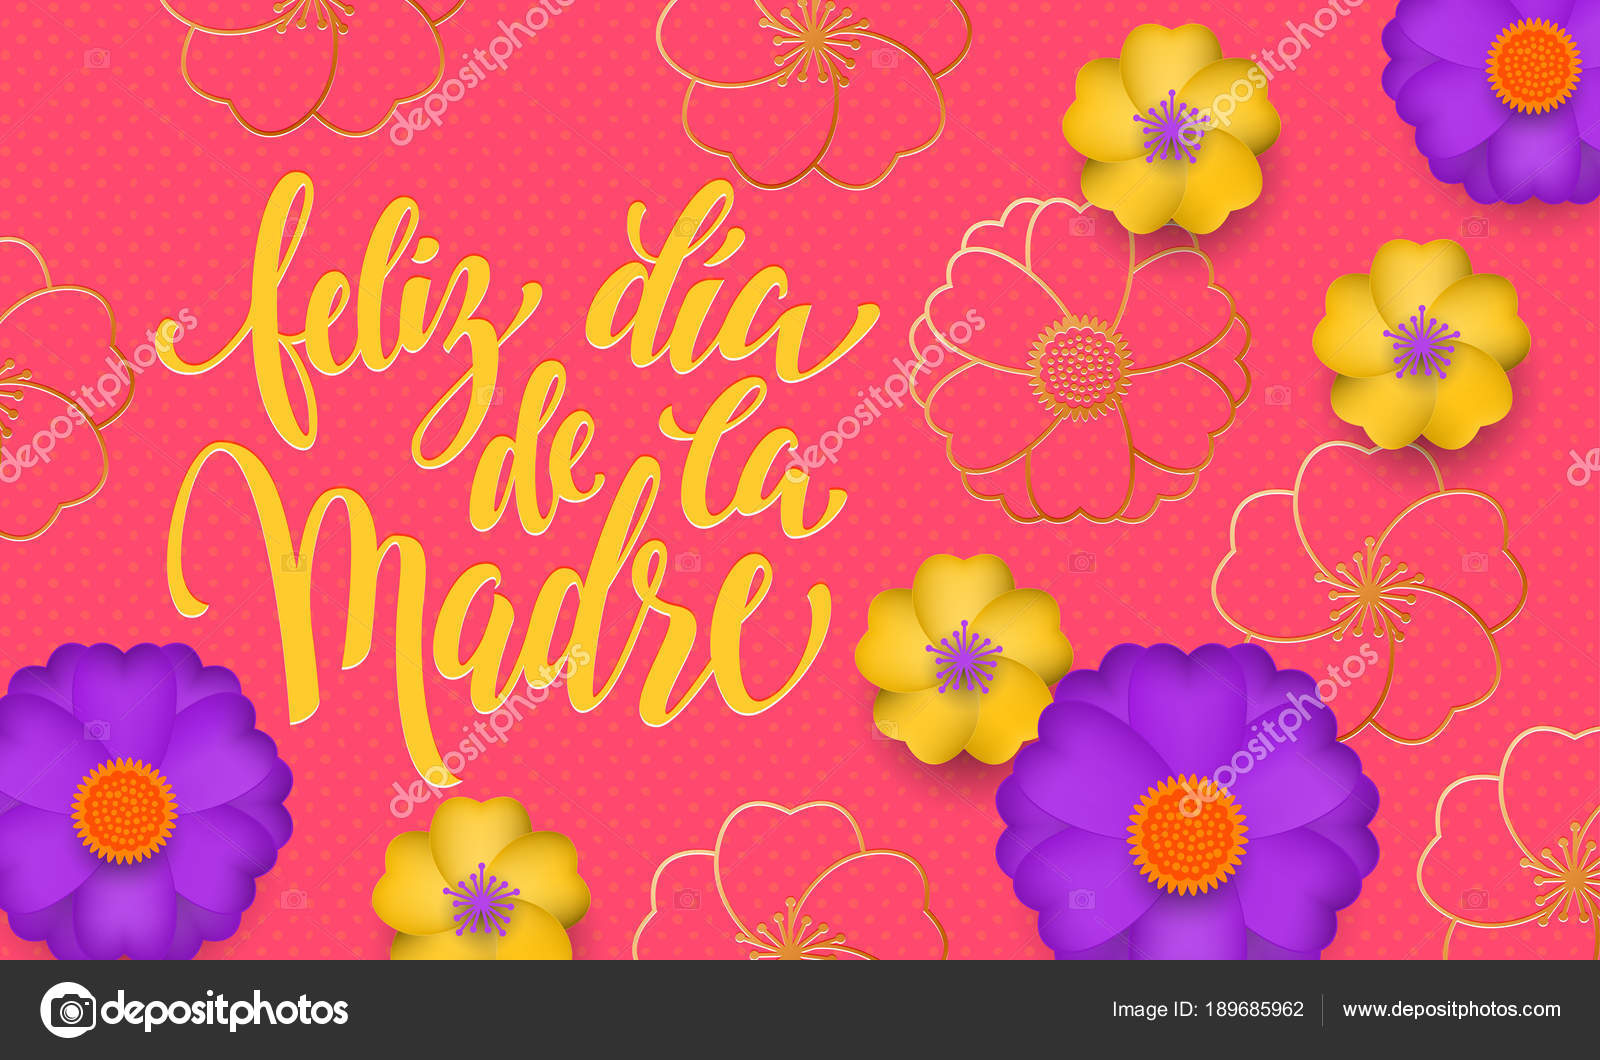 Mothers day in spanish with yellow blue flower in gold blooming mothers day in spanish with yellow blue flower in gold blooming pattern banner and spanish text feliz dia de la madre design template for seasonal mother izmirmasajfo